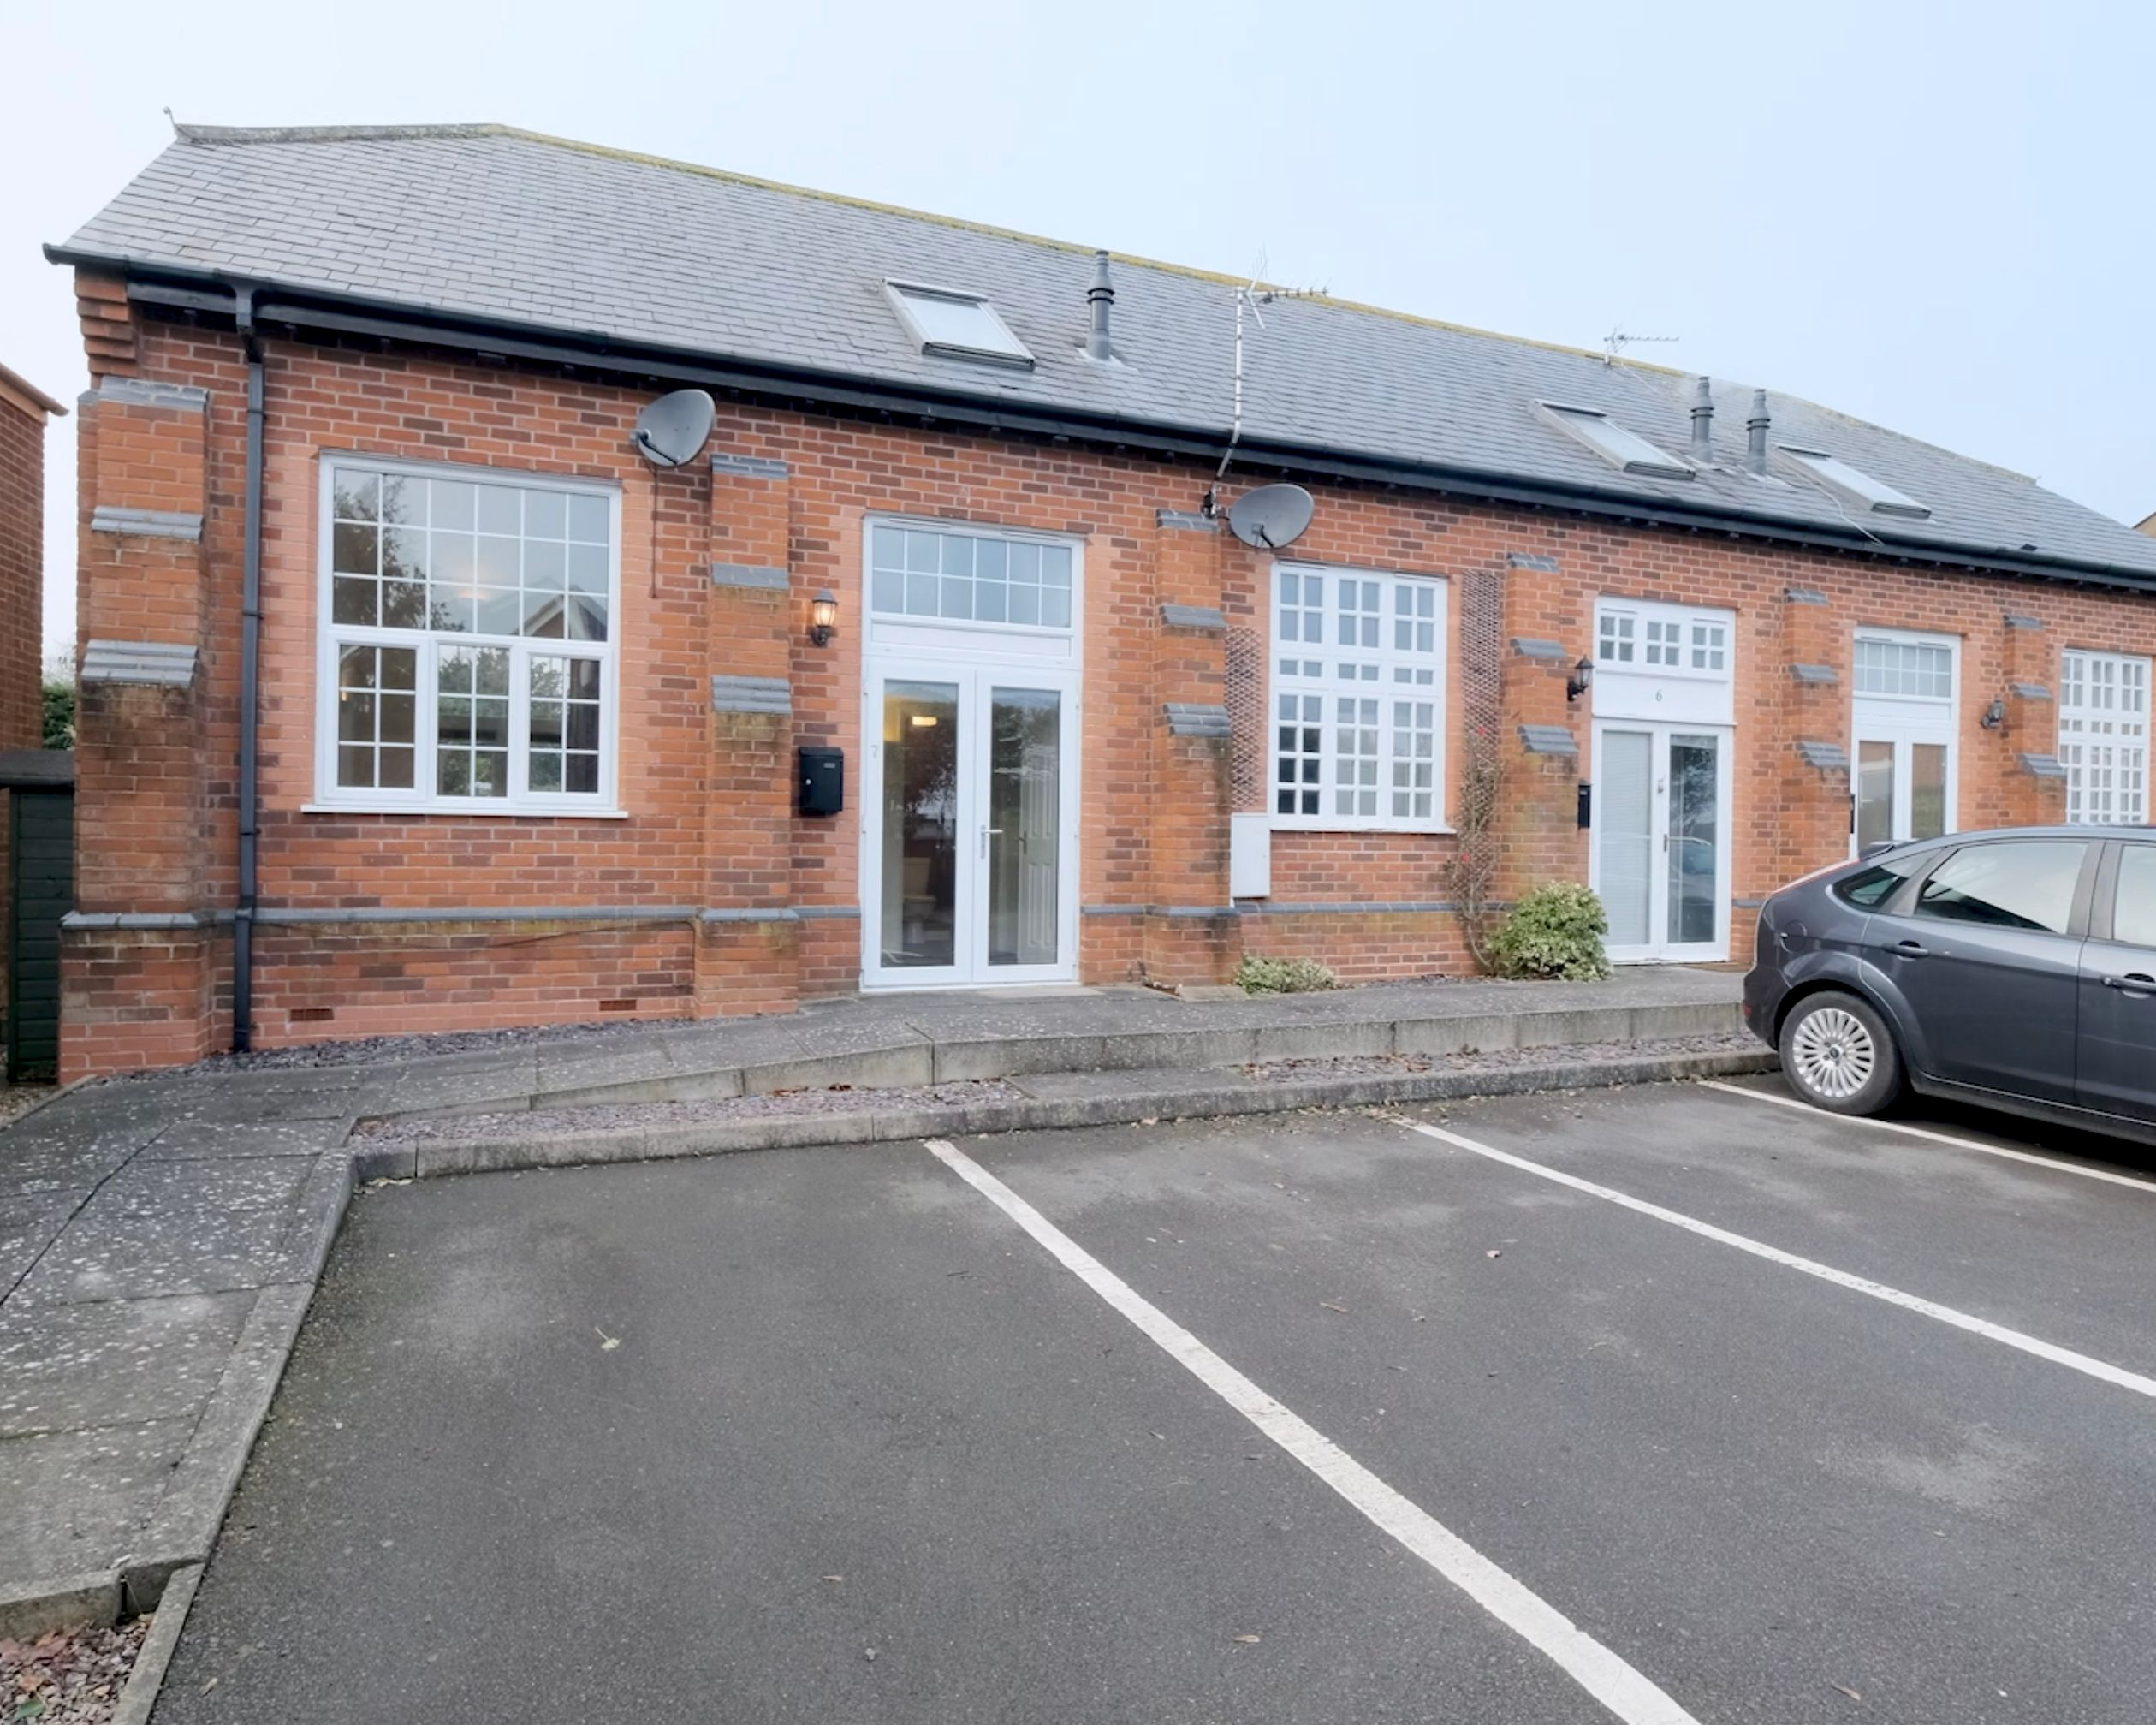 1 bed for sale in Scholars Court, Countesthorpe, LE8, Leicester - Property Image 1